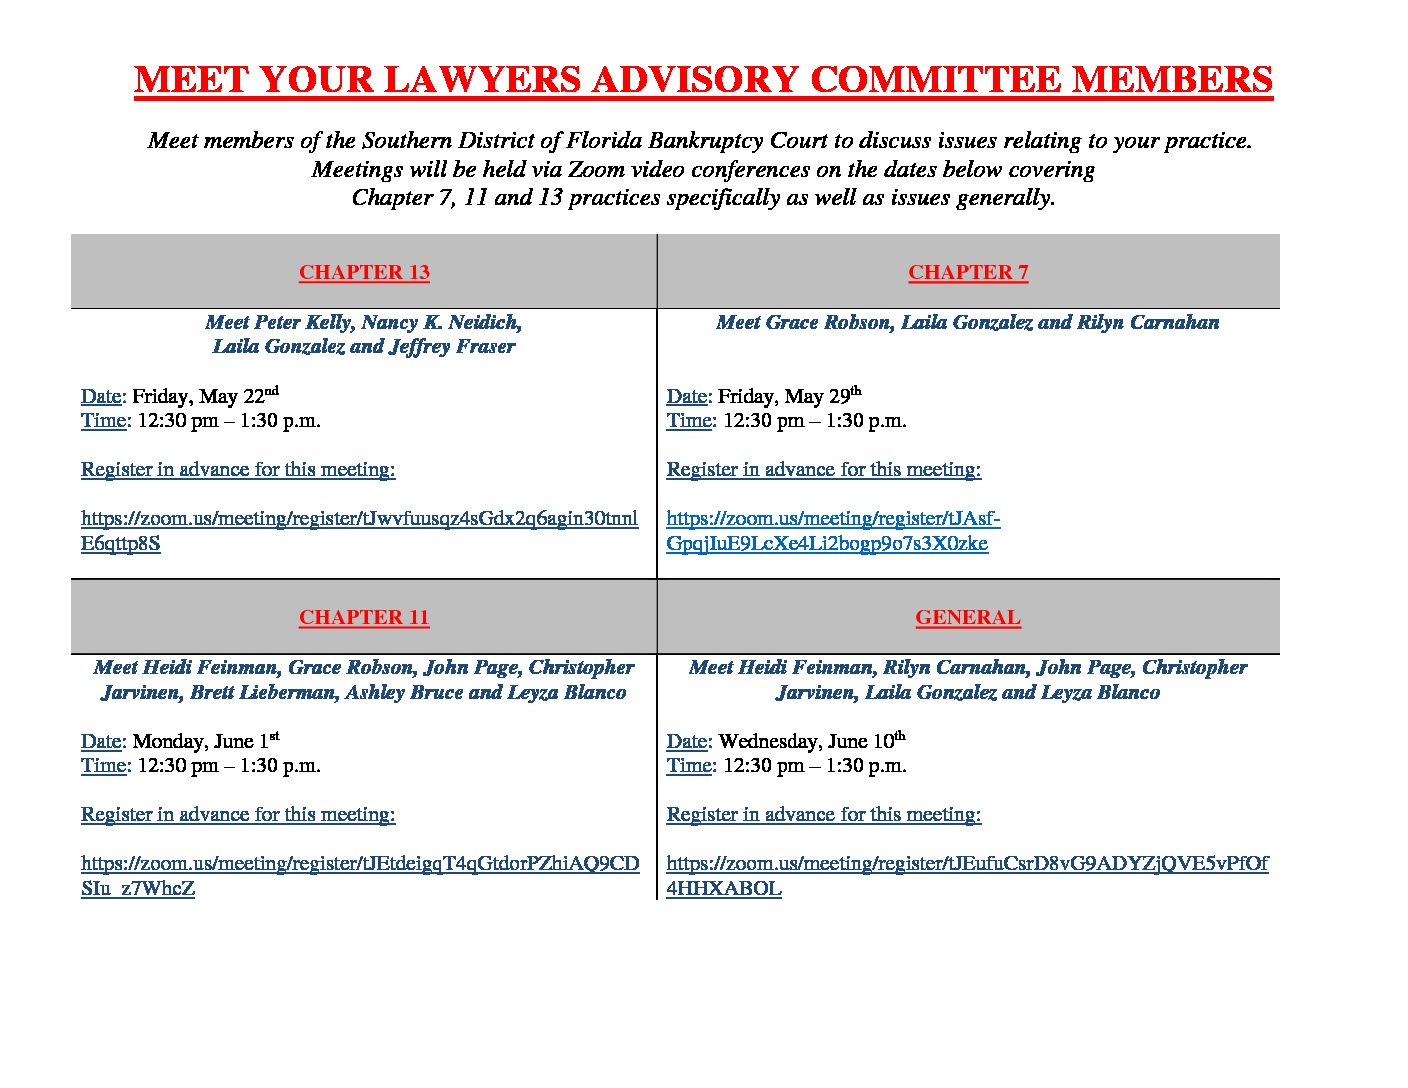 Meet Your Lawyers Advisory Committee Members – General